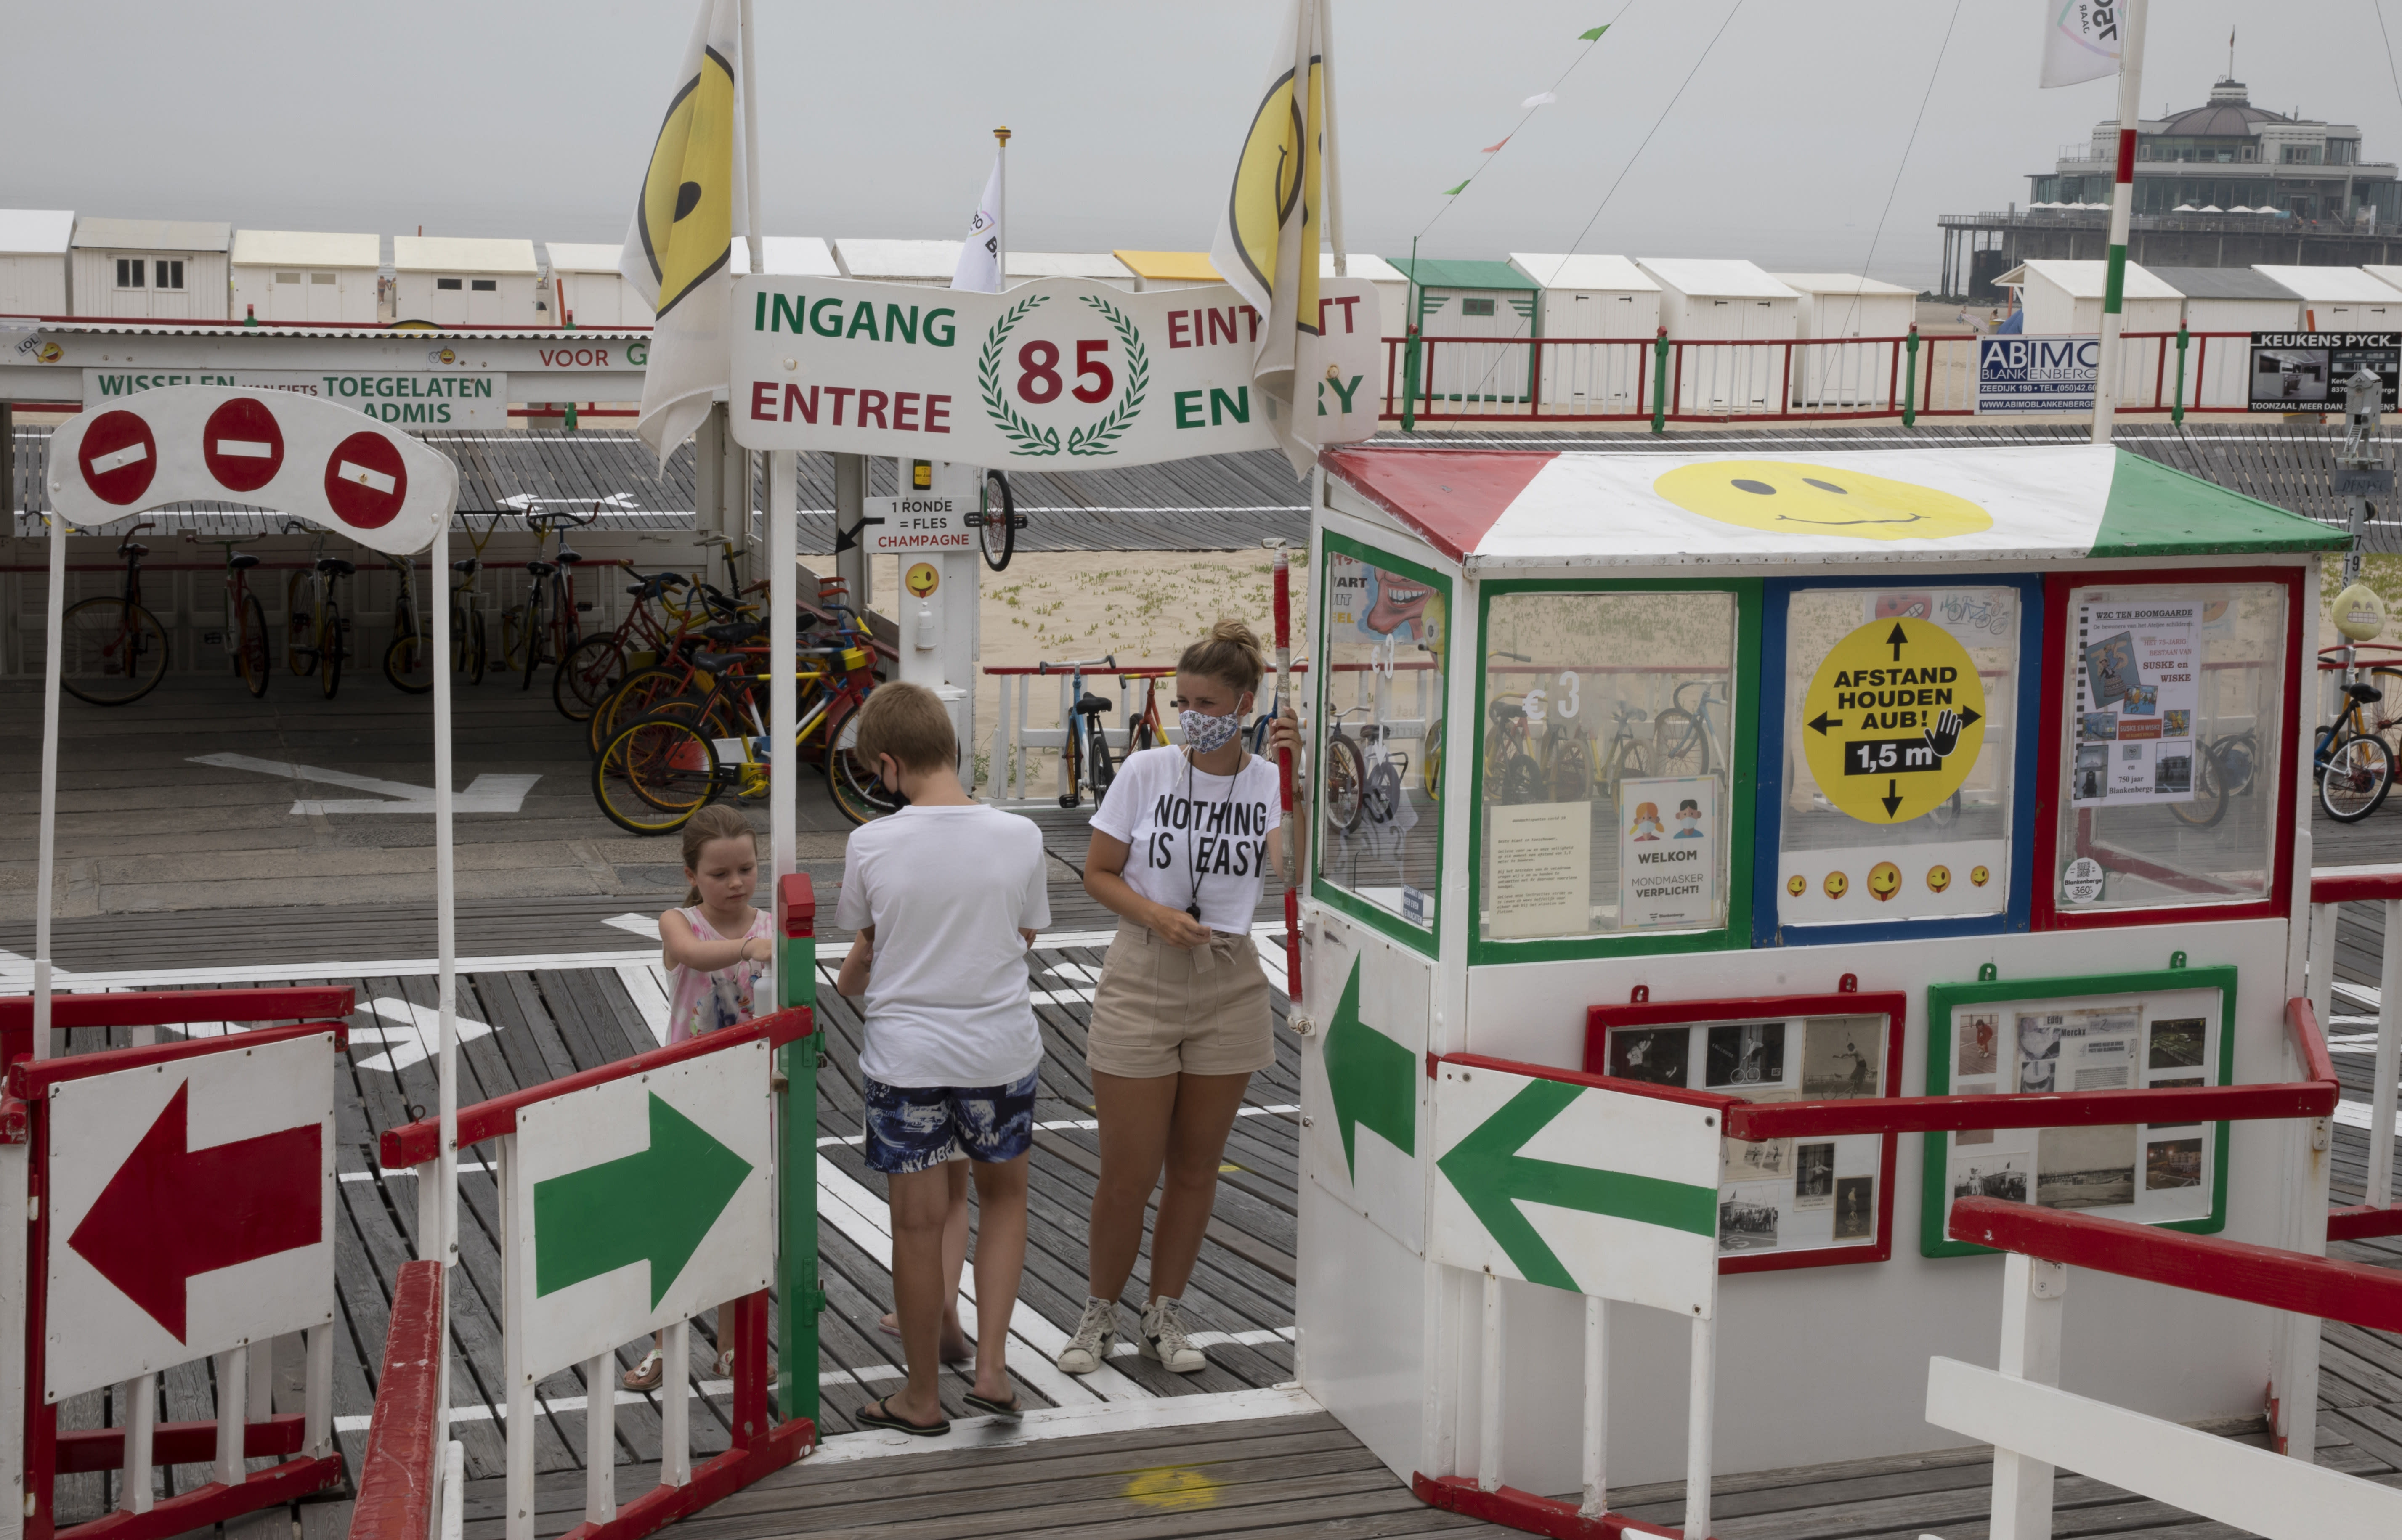 A vendor, asks children to use hand sanitizer before using an amusement ride on the beach at the Belgian seaside resort of Blankenberge, Belgium, Tuesday, Aug. 11, 2020. A skirmish took place on the beach on Saturday, Aug. 8, 2020 which resulted in two coastal communities banning day trippers from the city. (AP Photo/Virginia Mayo)